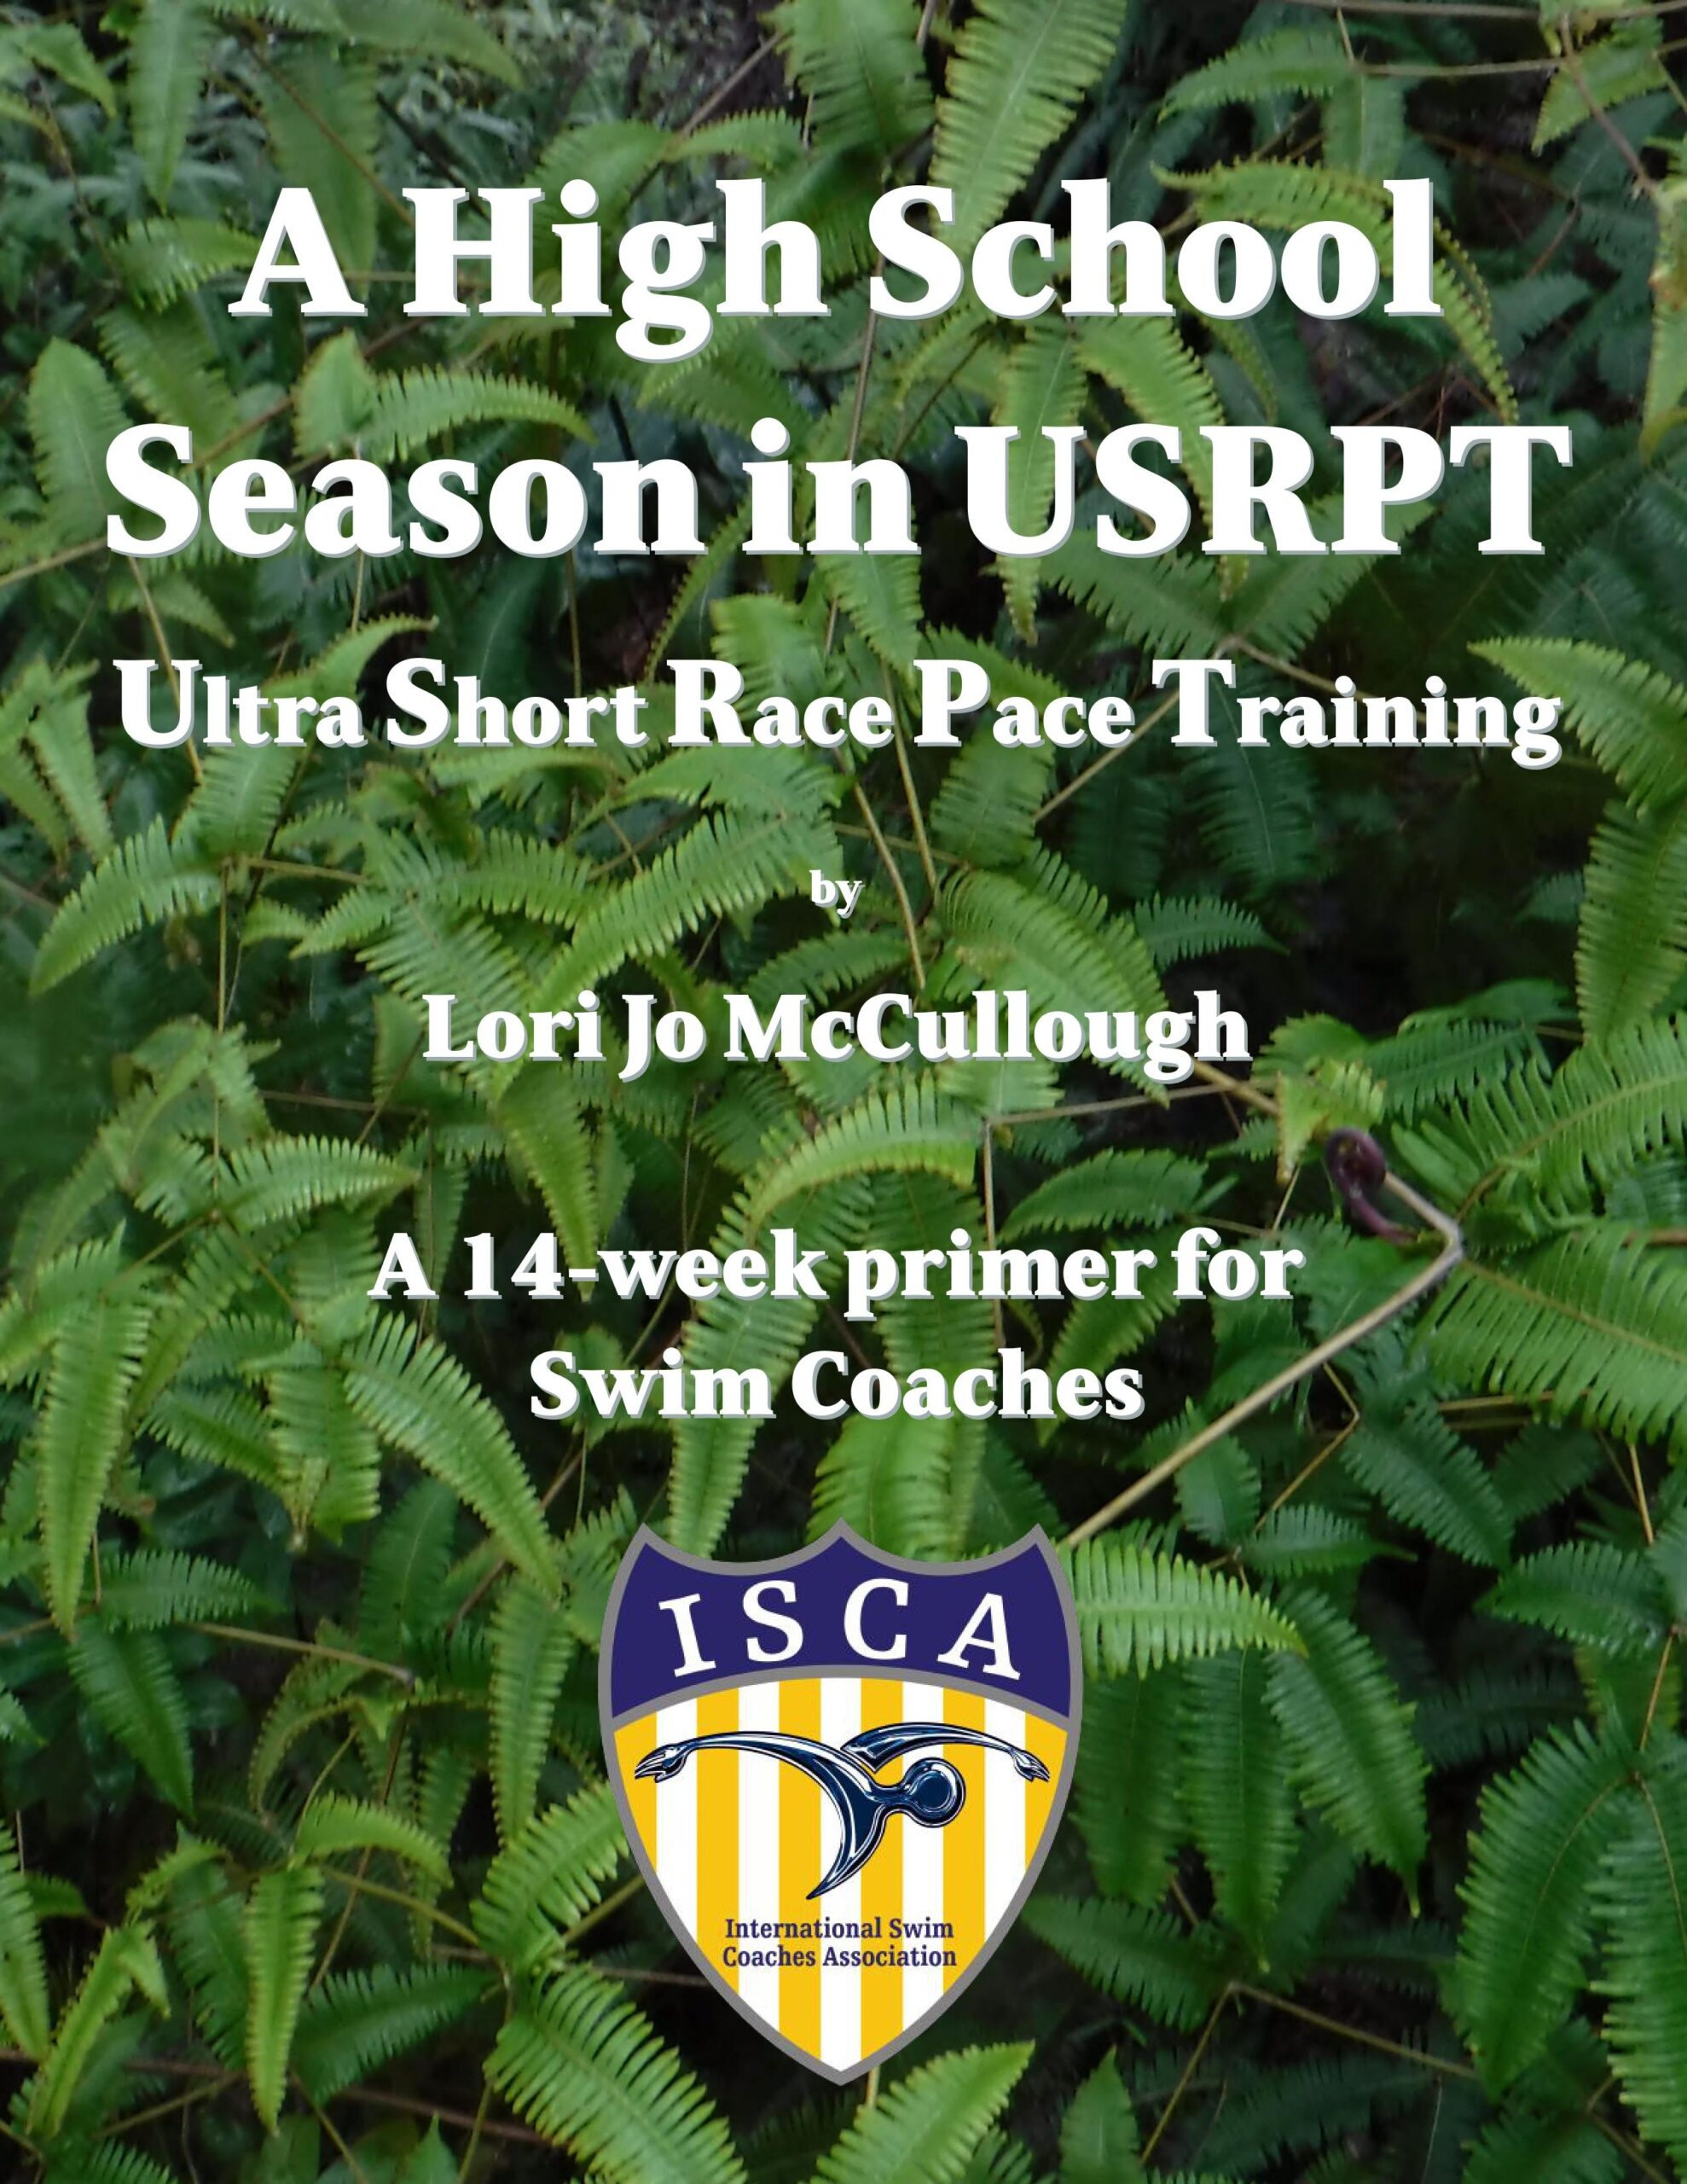 Book cover for a season of high school training with USRPT by Lori Jo - ISCA edition